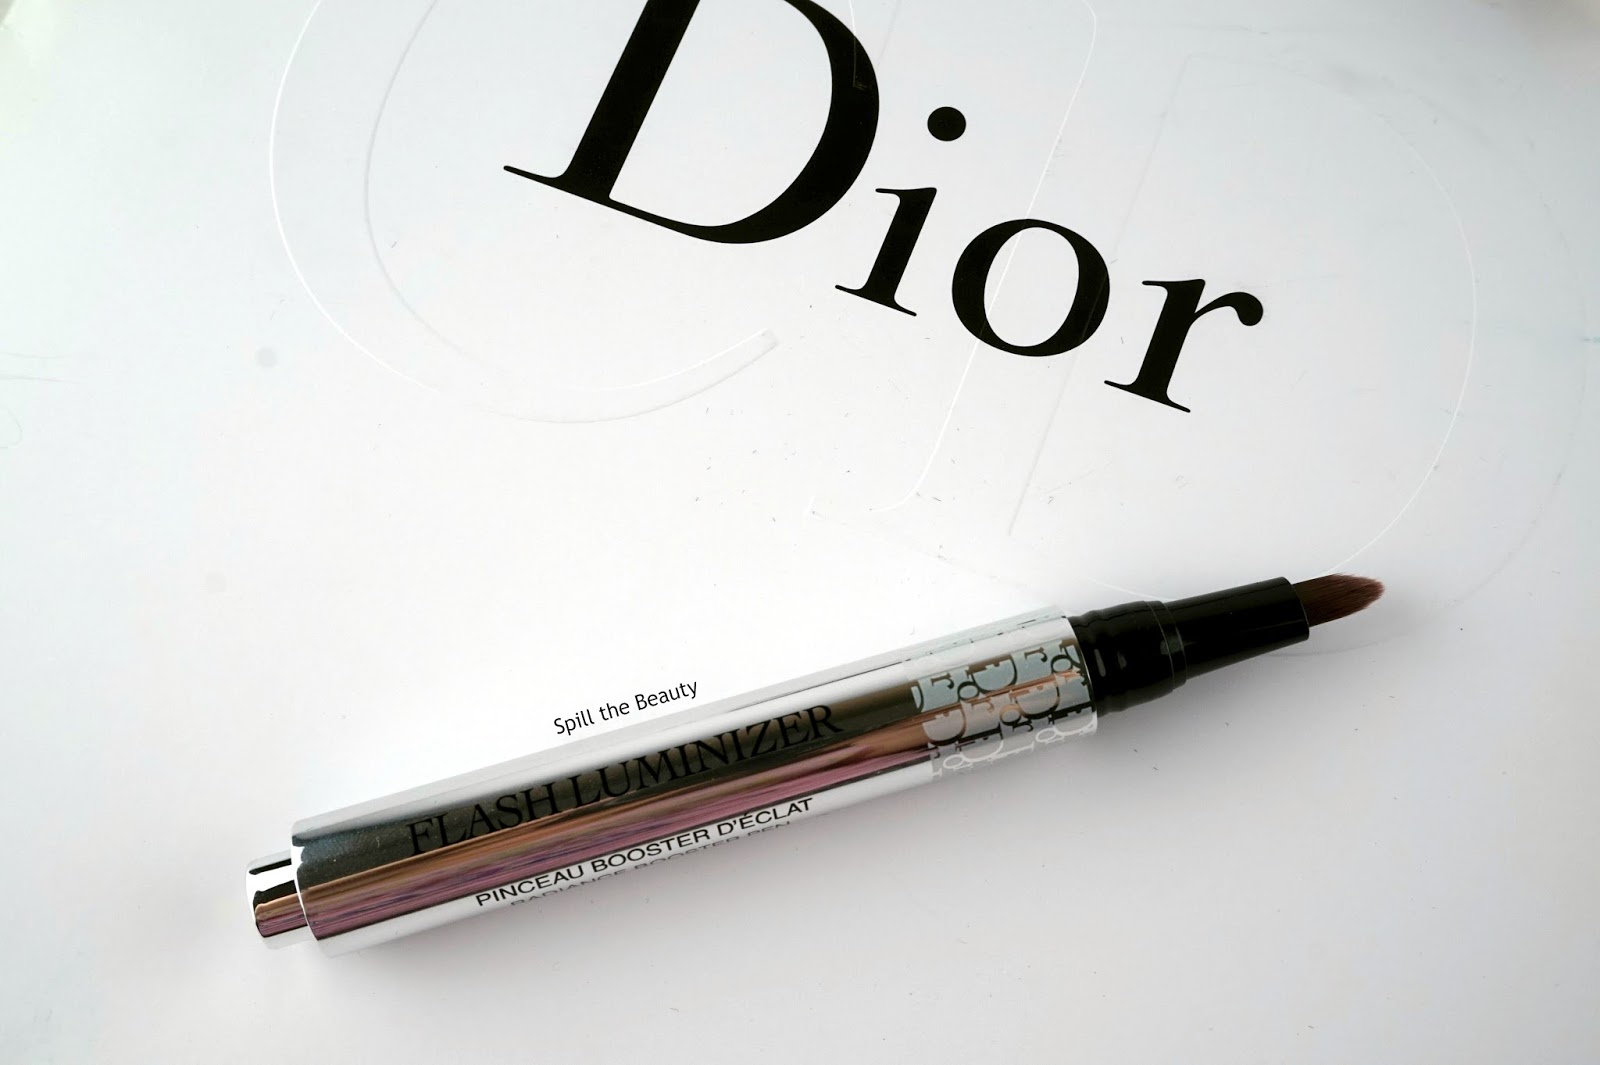 dior ricky wilson favorites flash luminzer